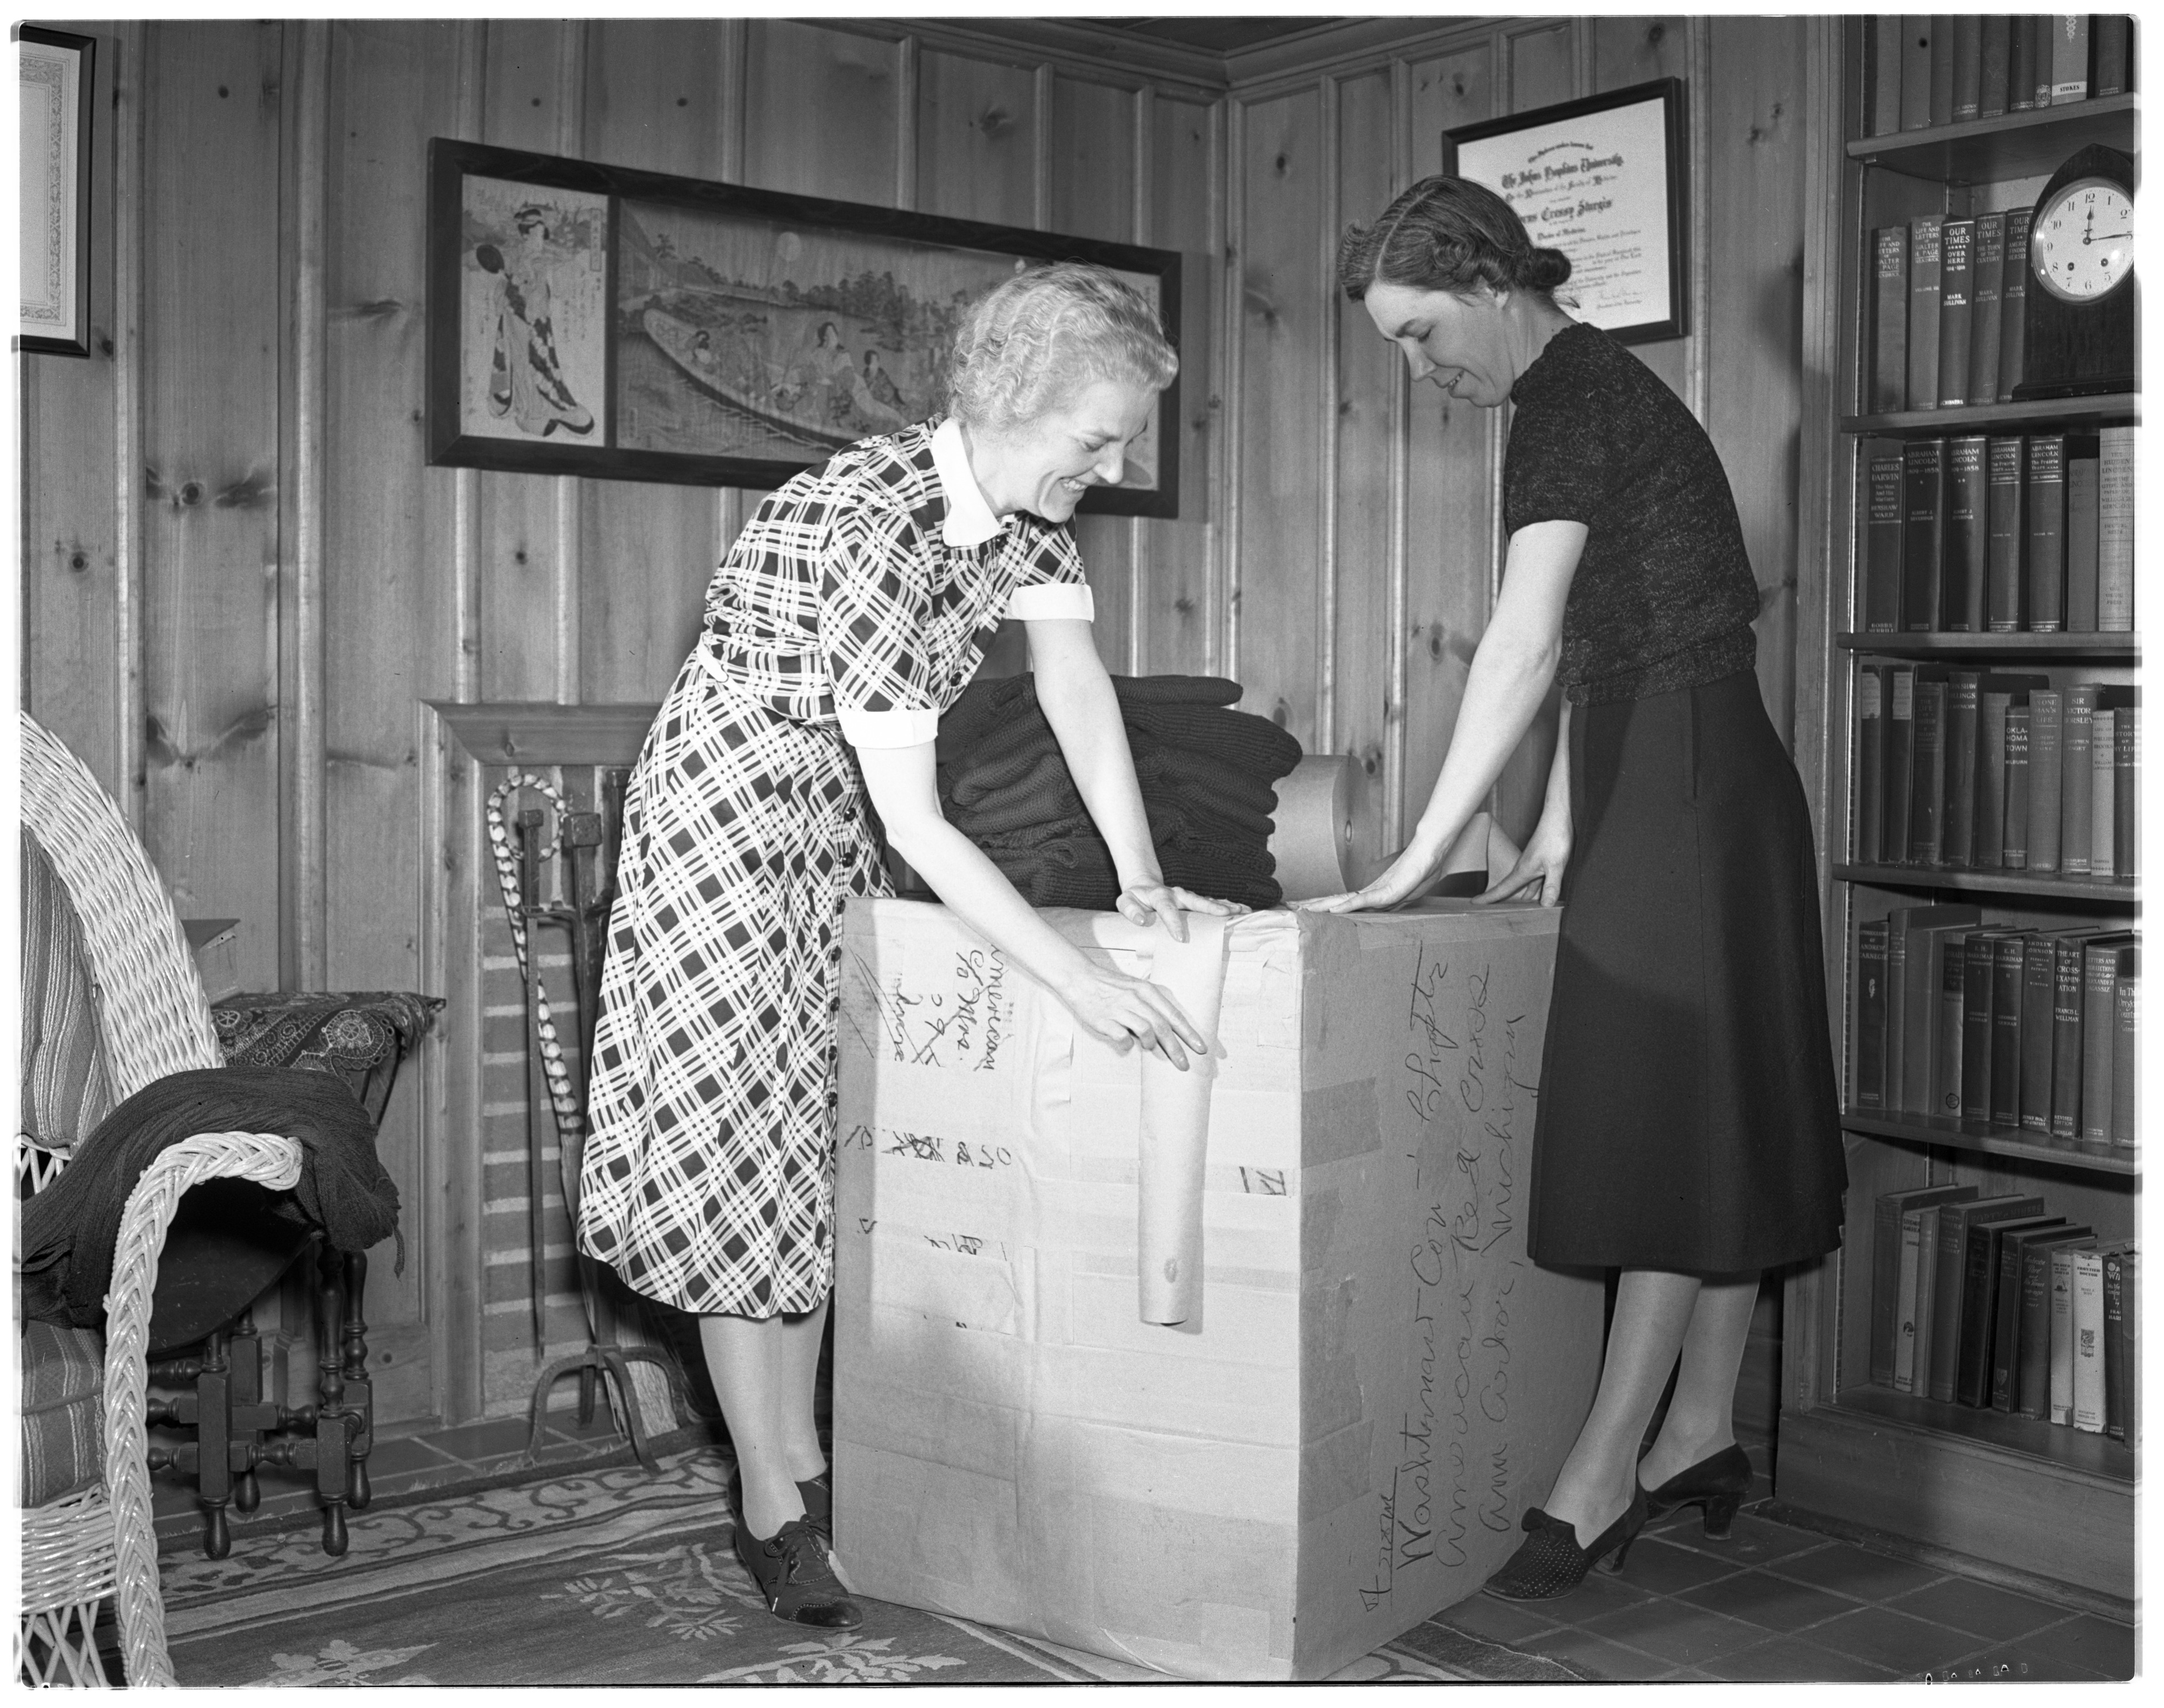 Mrs. Sturgis and Mrs. McCready of the Red Cross Packing Box for Finland, April 1940 image